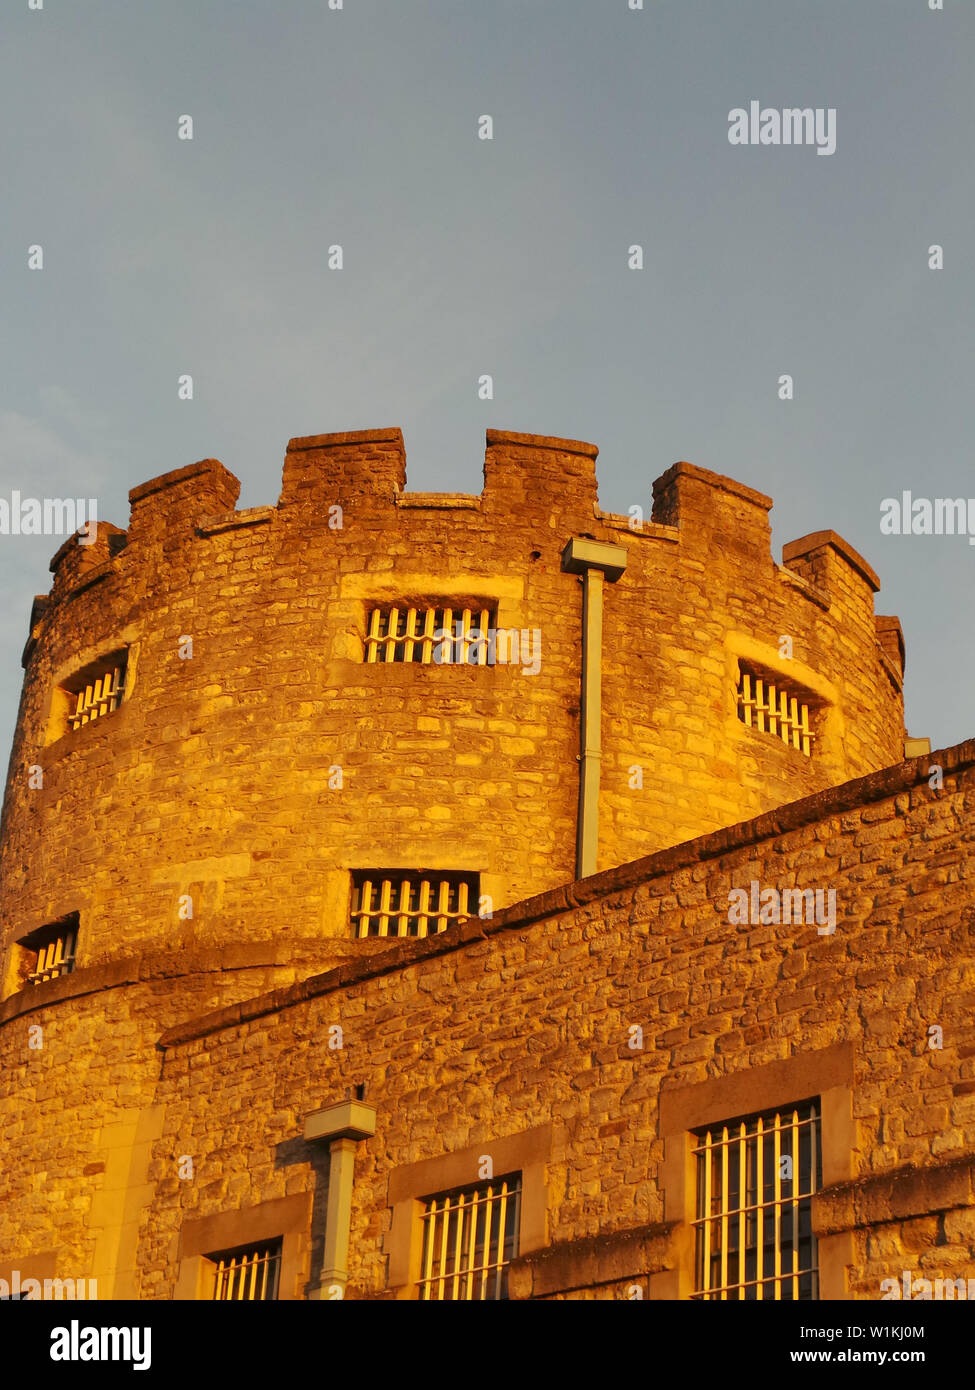 Oxford, United Kingdom - April 06 2013:   The settting sun casts a warm light over the tower of Oxford Castle off Paradise St - Stock Image